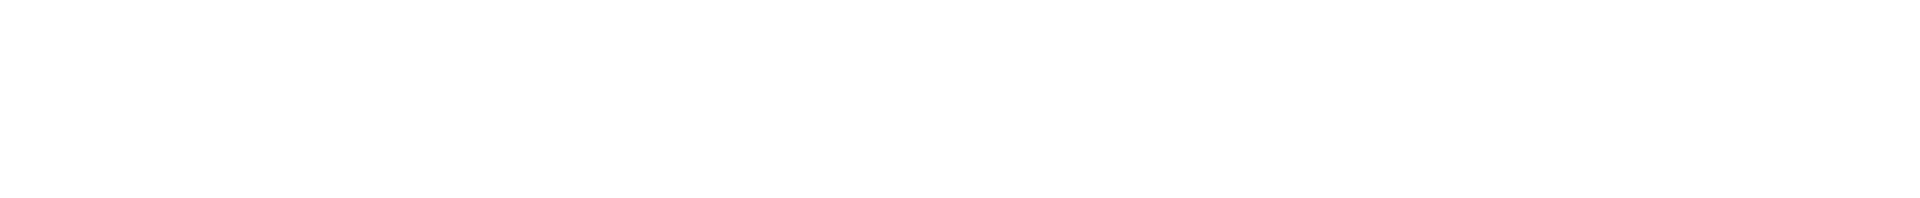 i-SPEED 220/221 logo.